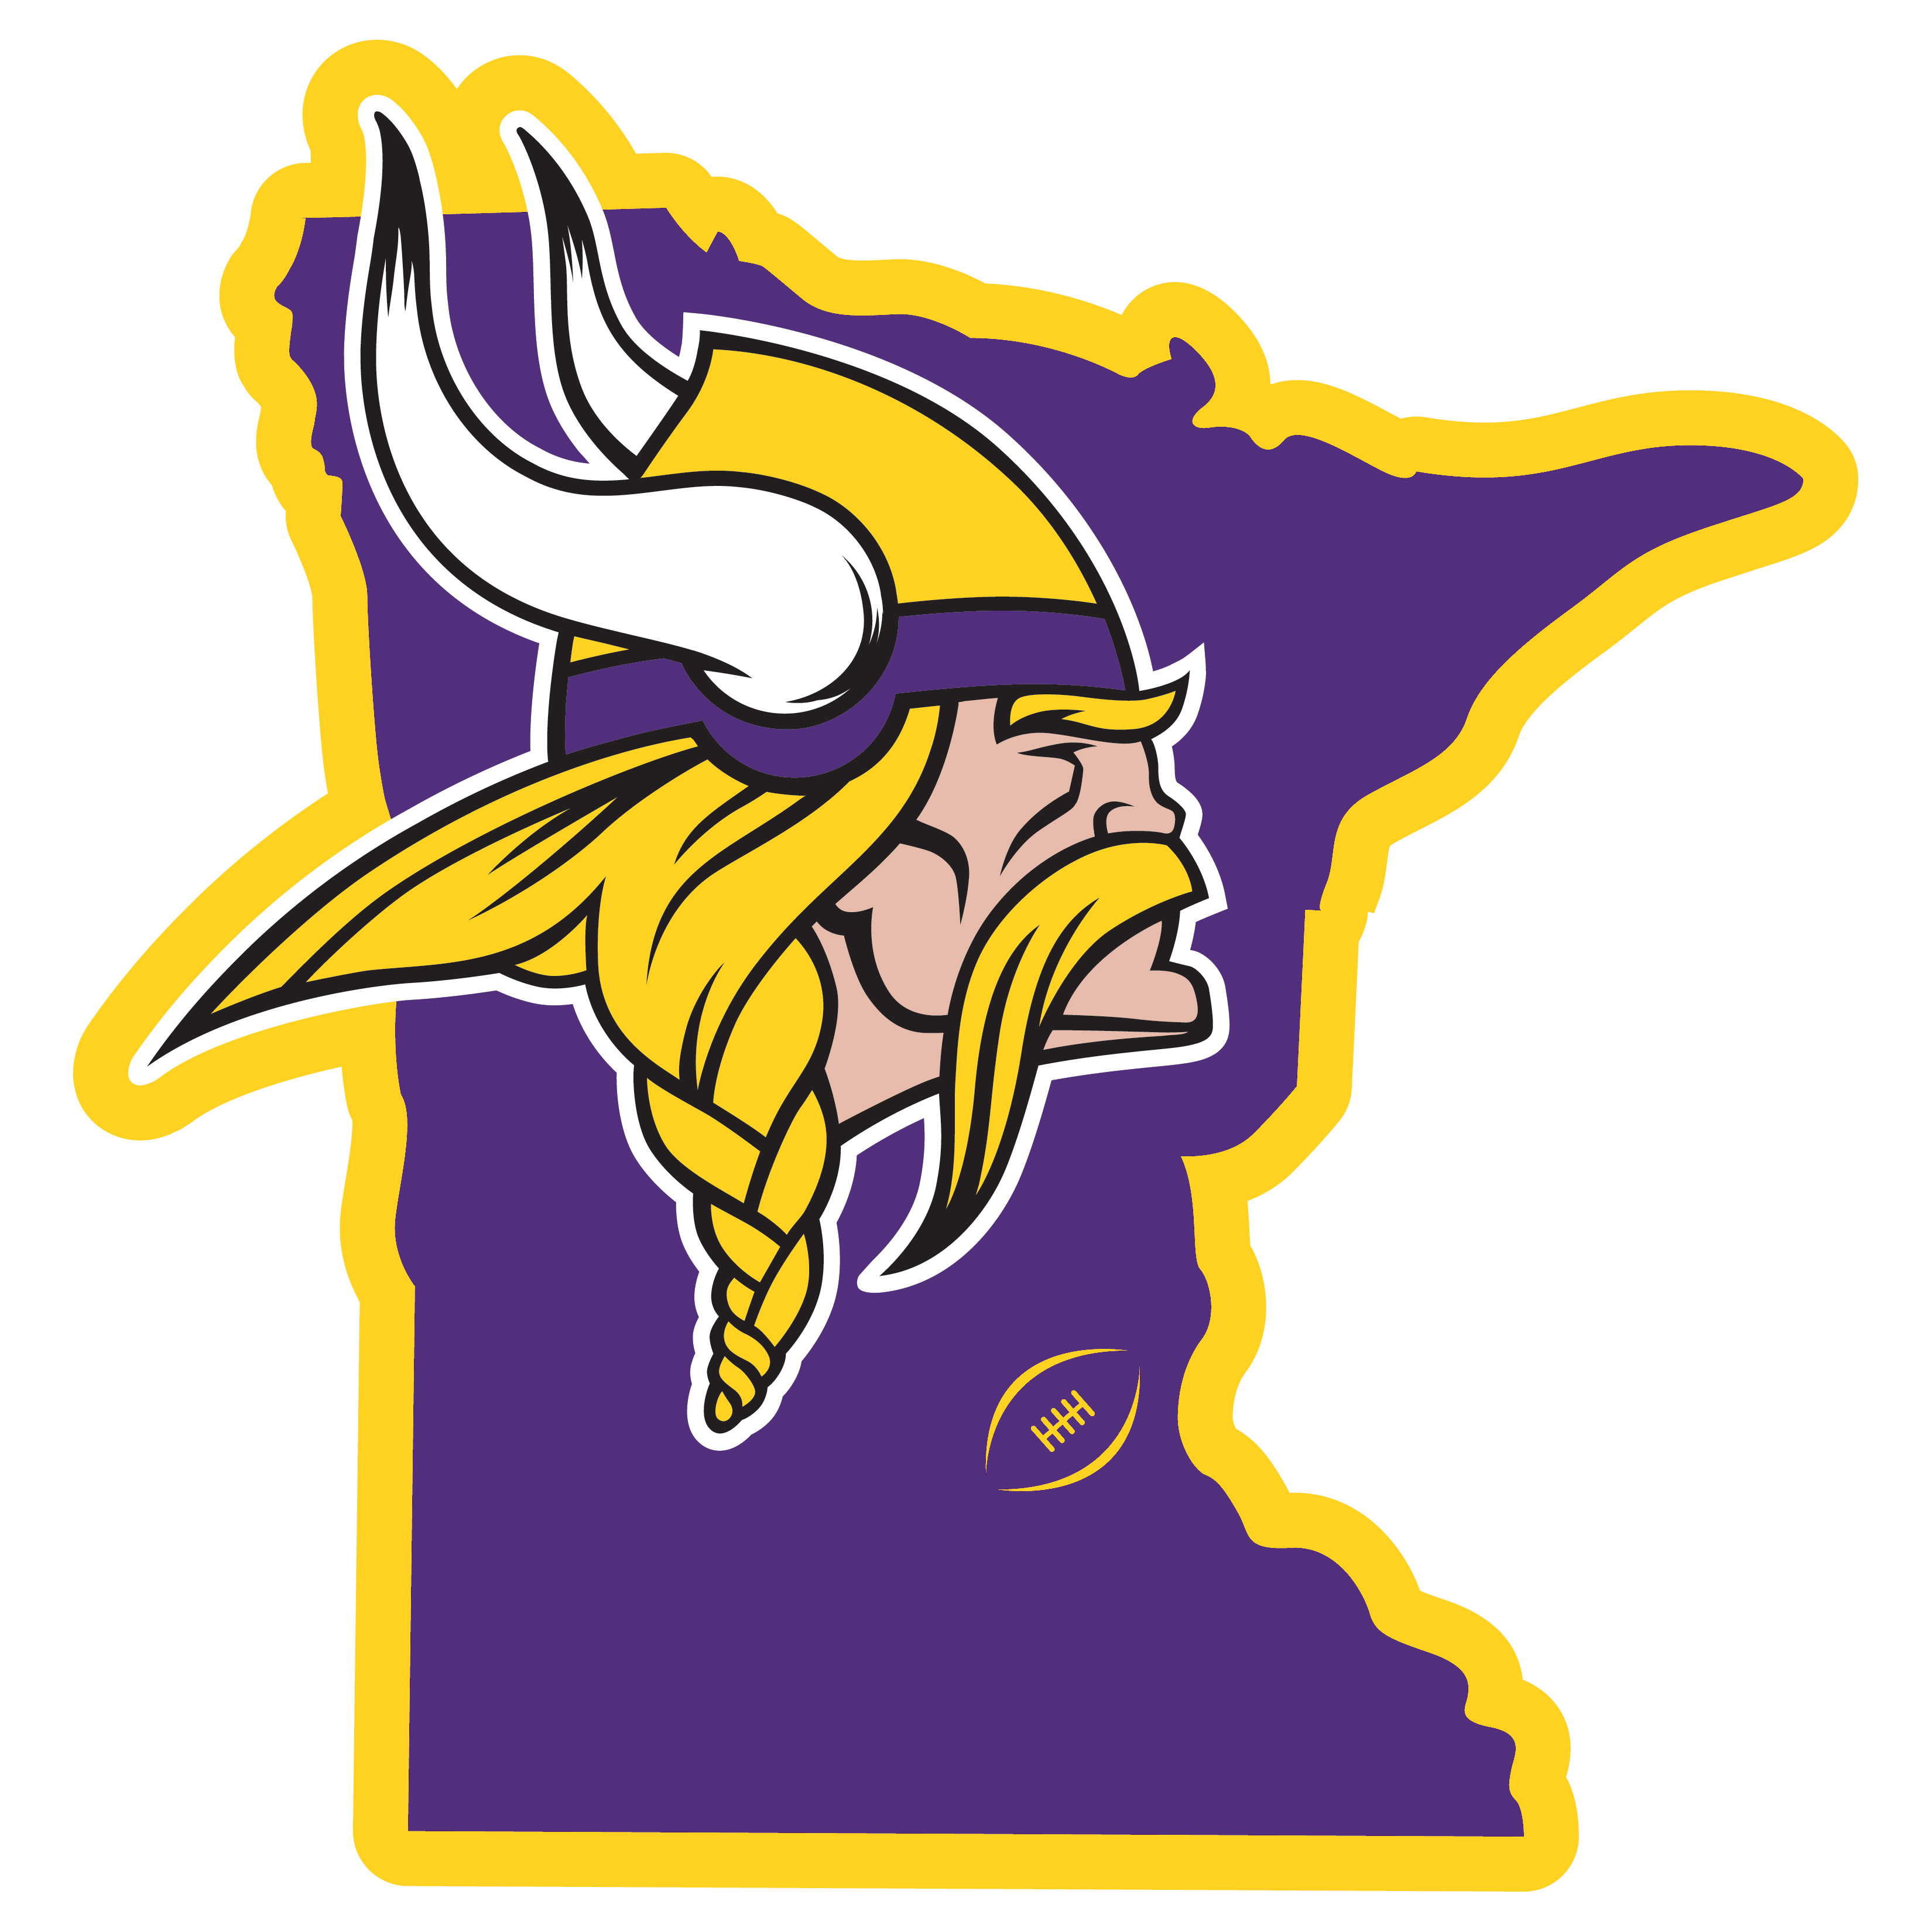 Minnesota Vikings Home State 11 Inch Magnet - Whether you are caravaning to the game or having a tailgate party make sure you car is wearing its fan gear with our extra large, 11 inch Minnesota Vikings home state magnets. These striking magnets can be easily placed on for game day and removed without the residue left by decals. The design features a bright state outline with the location of the team highlighted with a football and a large team logo.